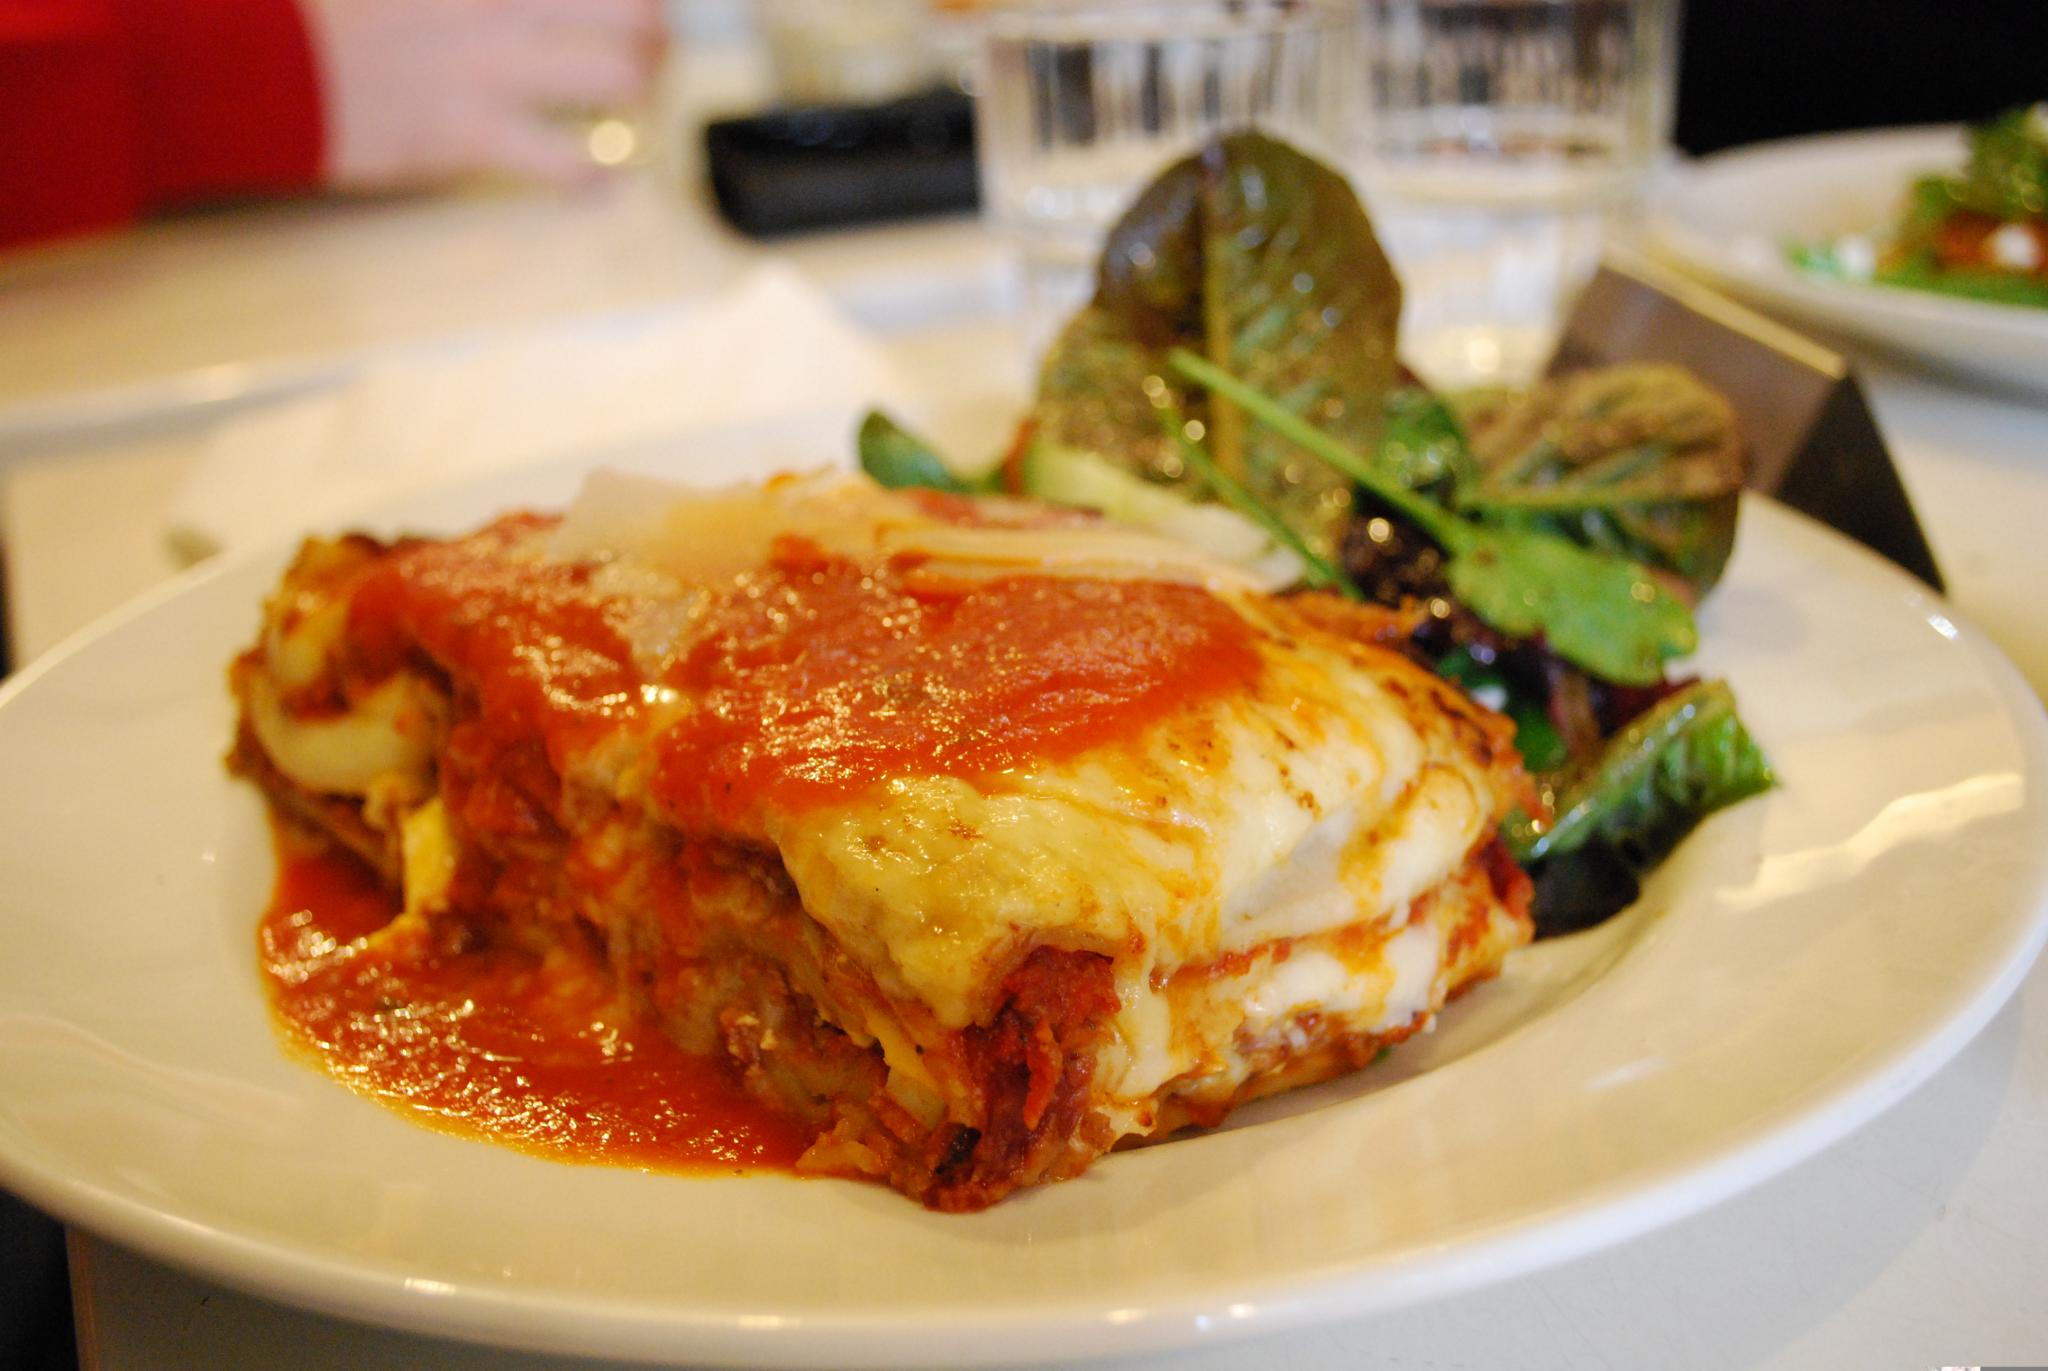 File:Beef lasagna at Cafe Stax, July 2009.jpg - Wikimedia Commons